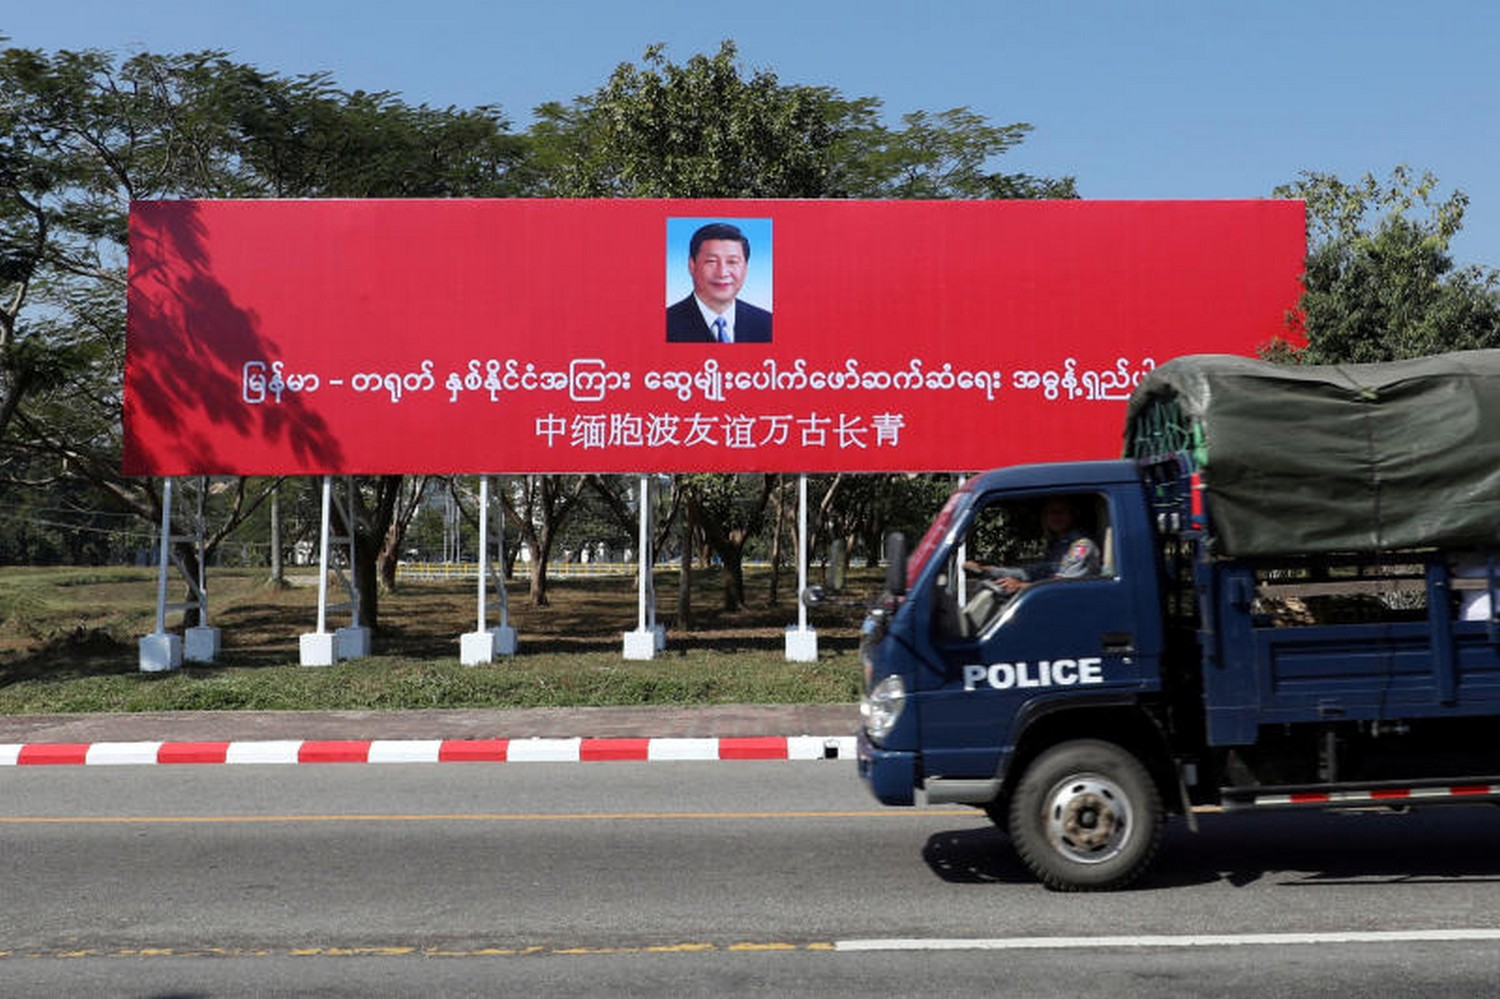 A police van drives by a banner welcoming Chinese President Xi Jinping ahead of his visit to Myanmar, in Nay Pyi Taw. (Photo: Reuters)